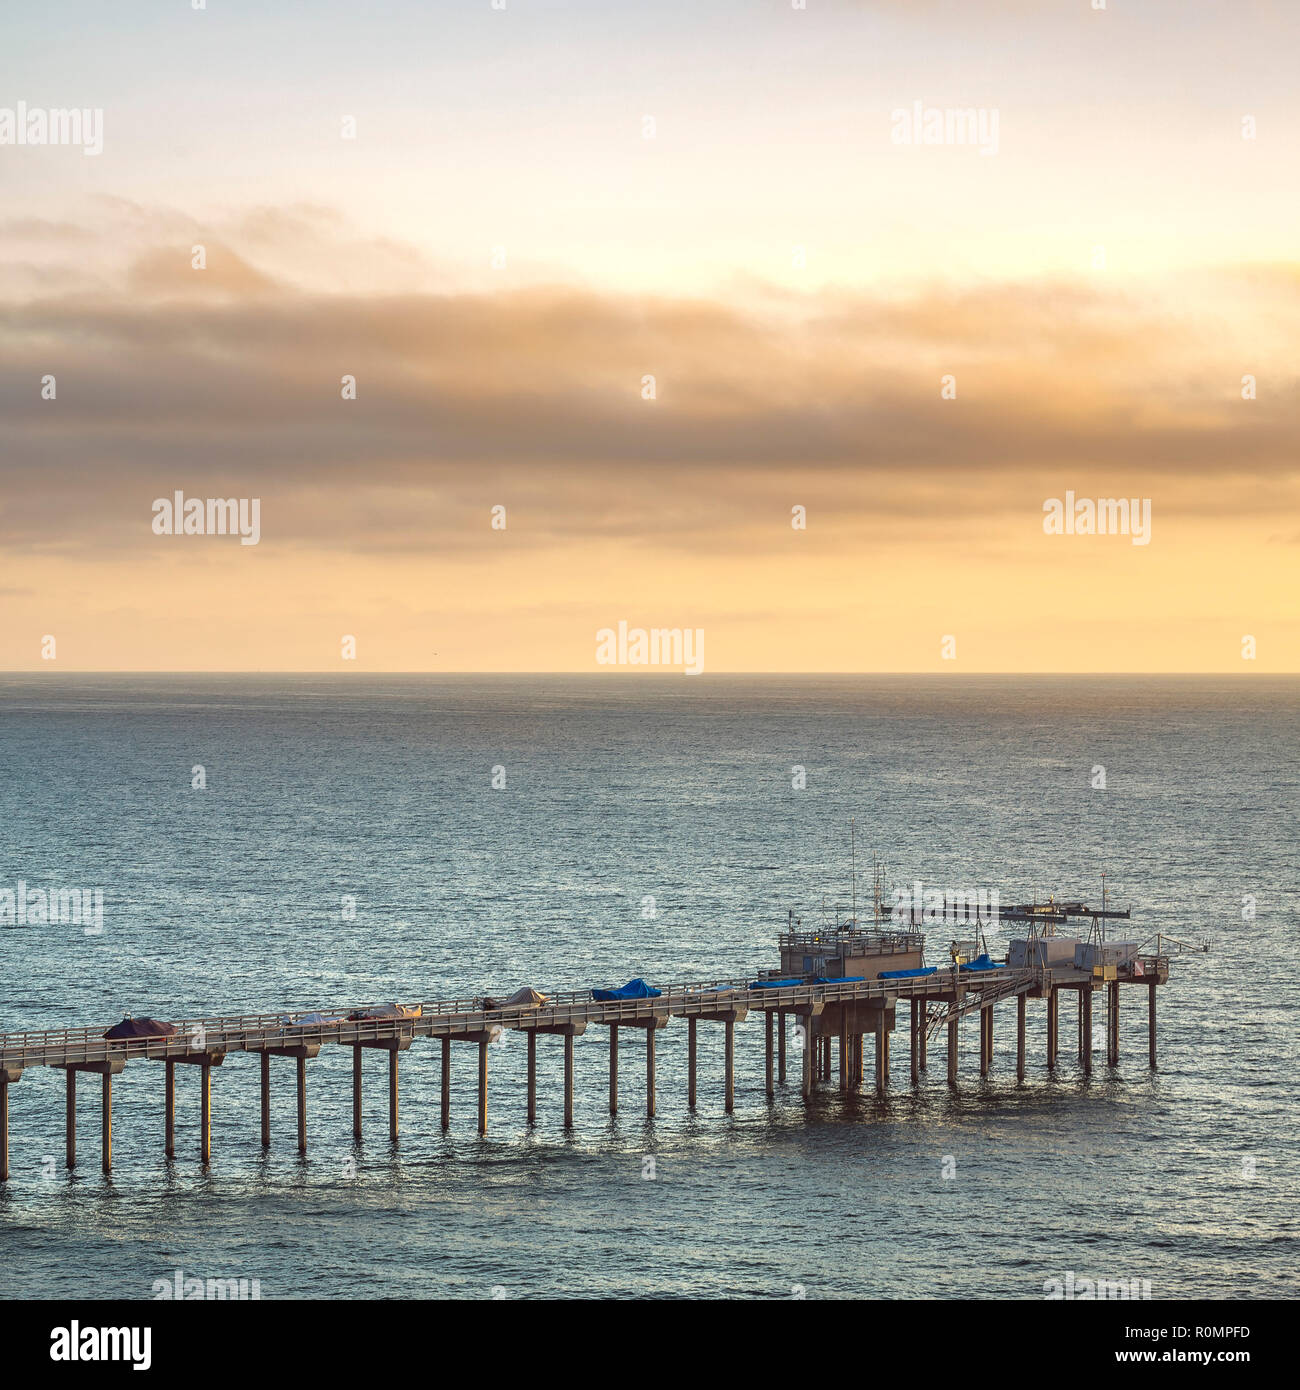 Ocean and horizon view in Scripps Pier at sunset - Stock Image